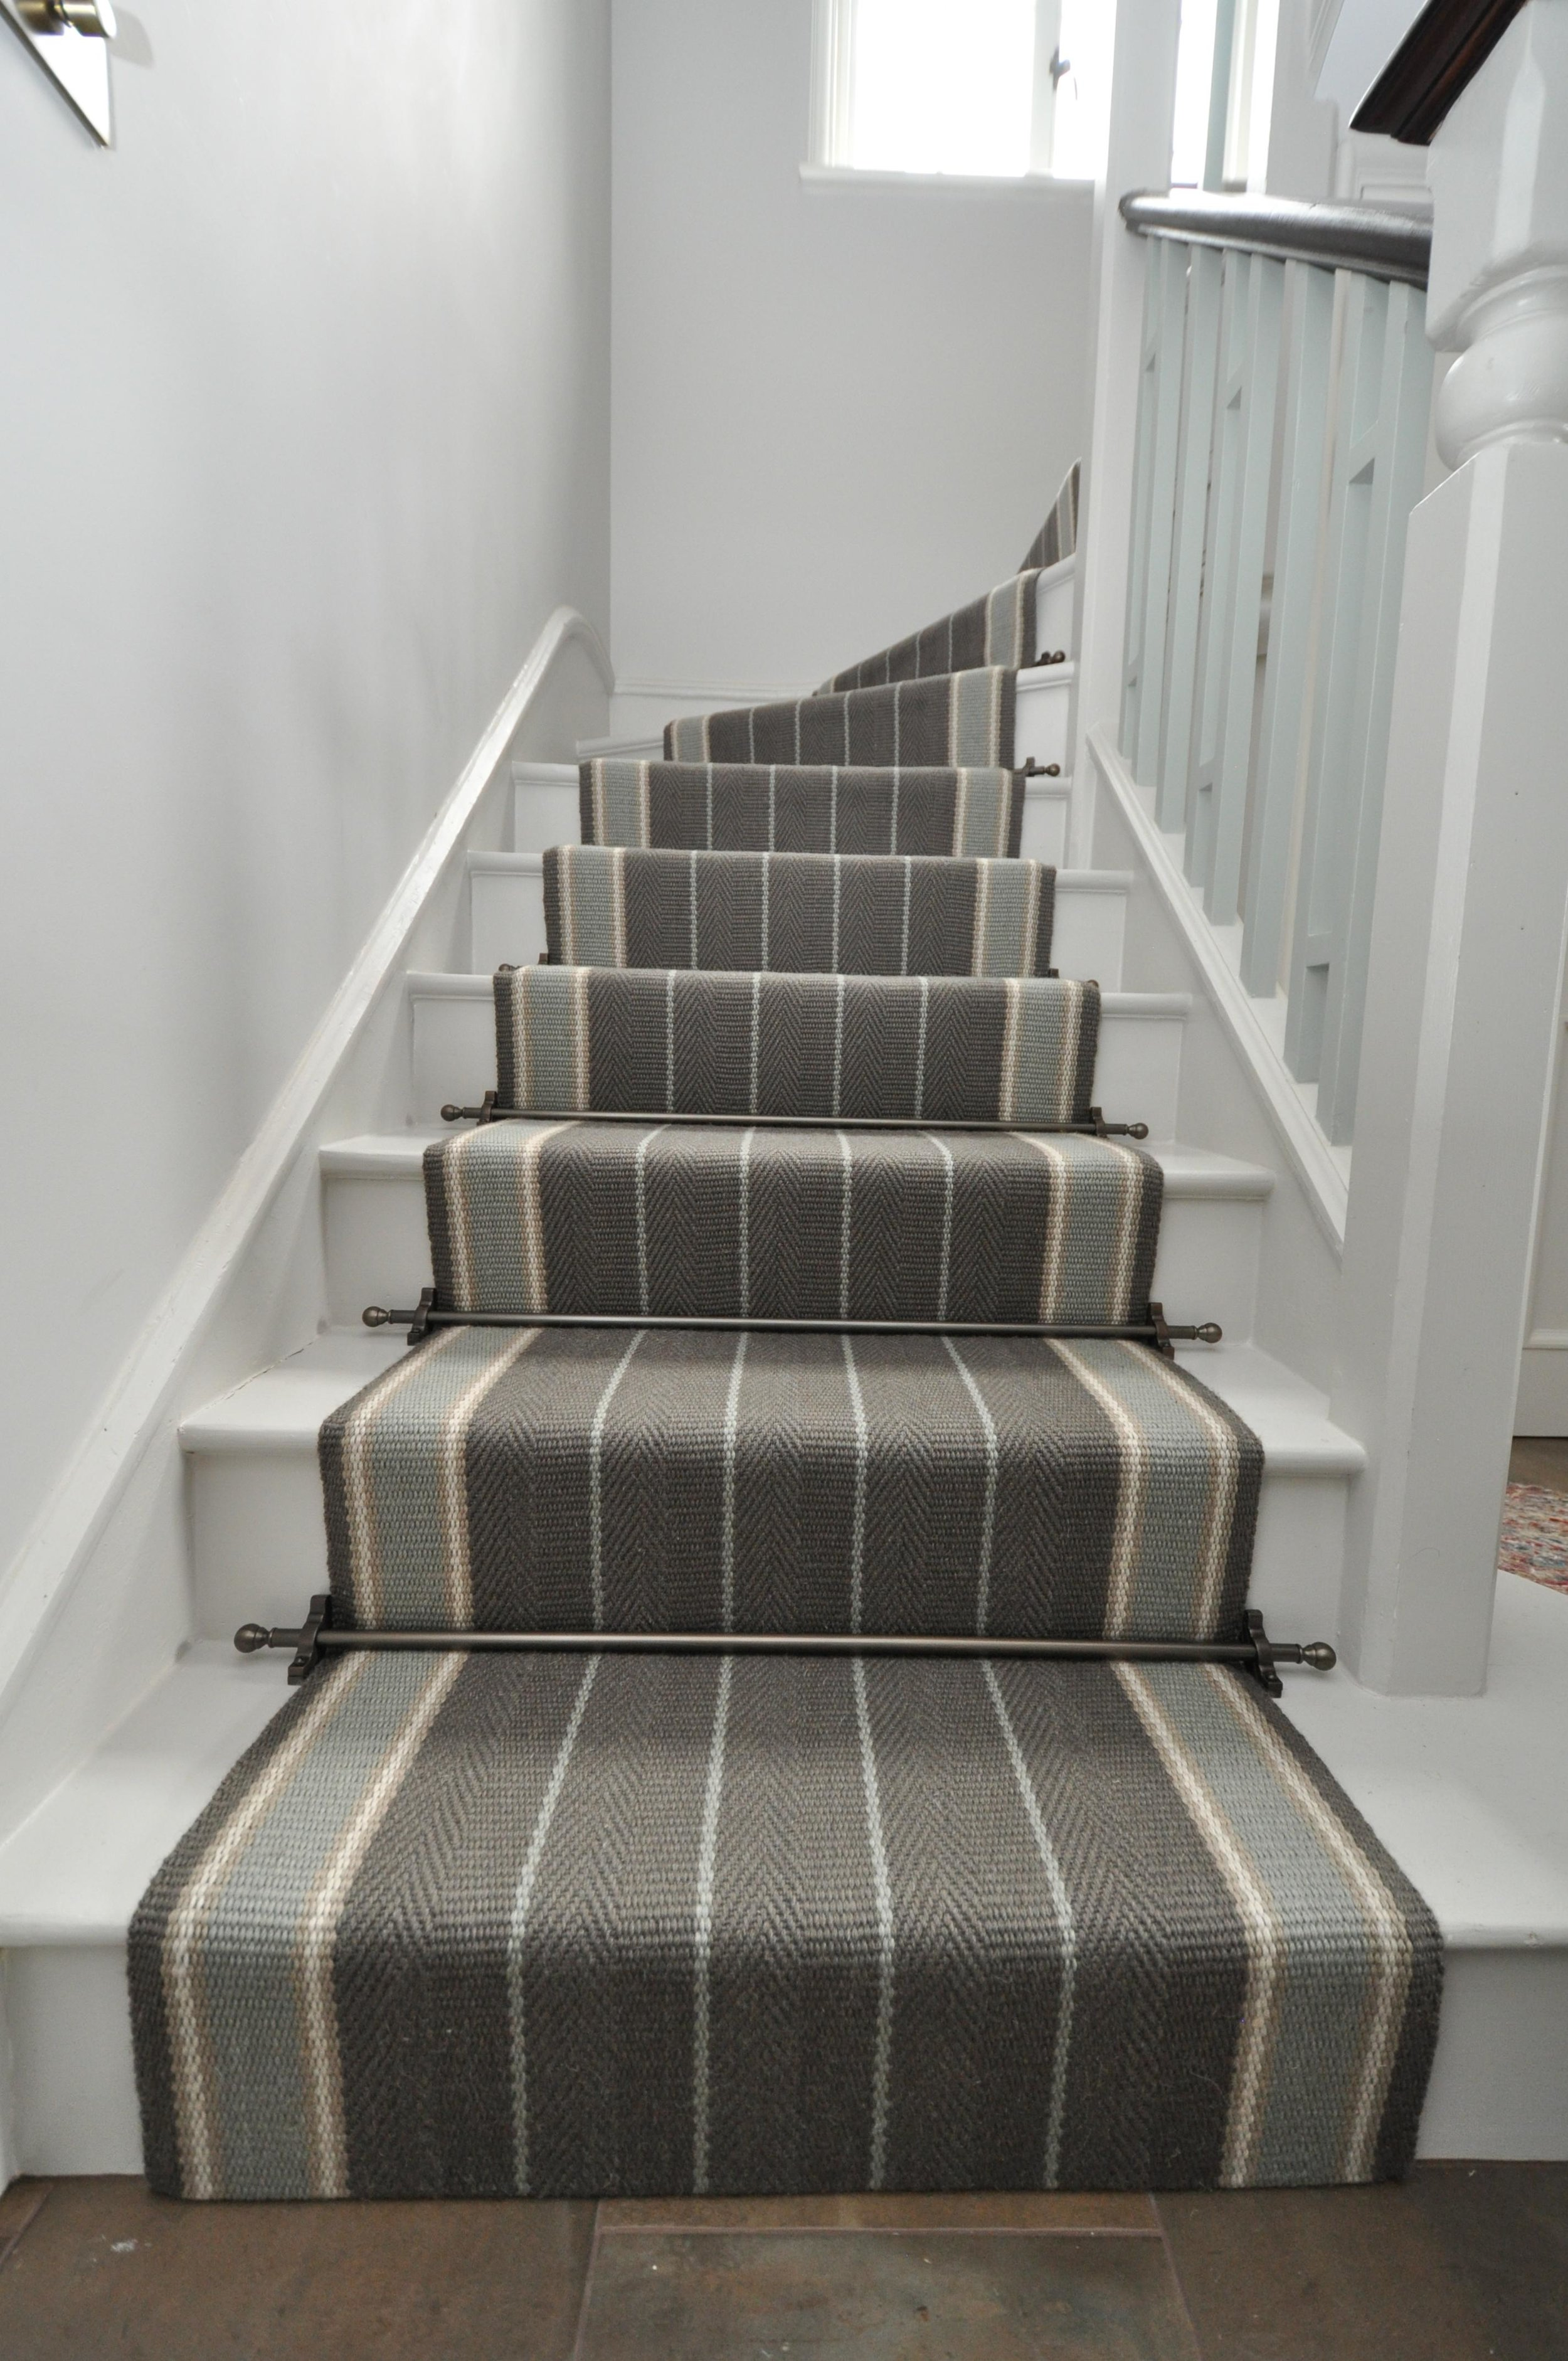 flatweave-stair-runner-london-bowloom-carpet-off-the-loom-DSC_1501.jpg